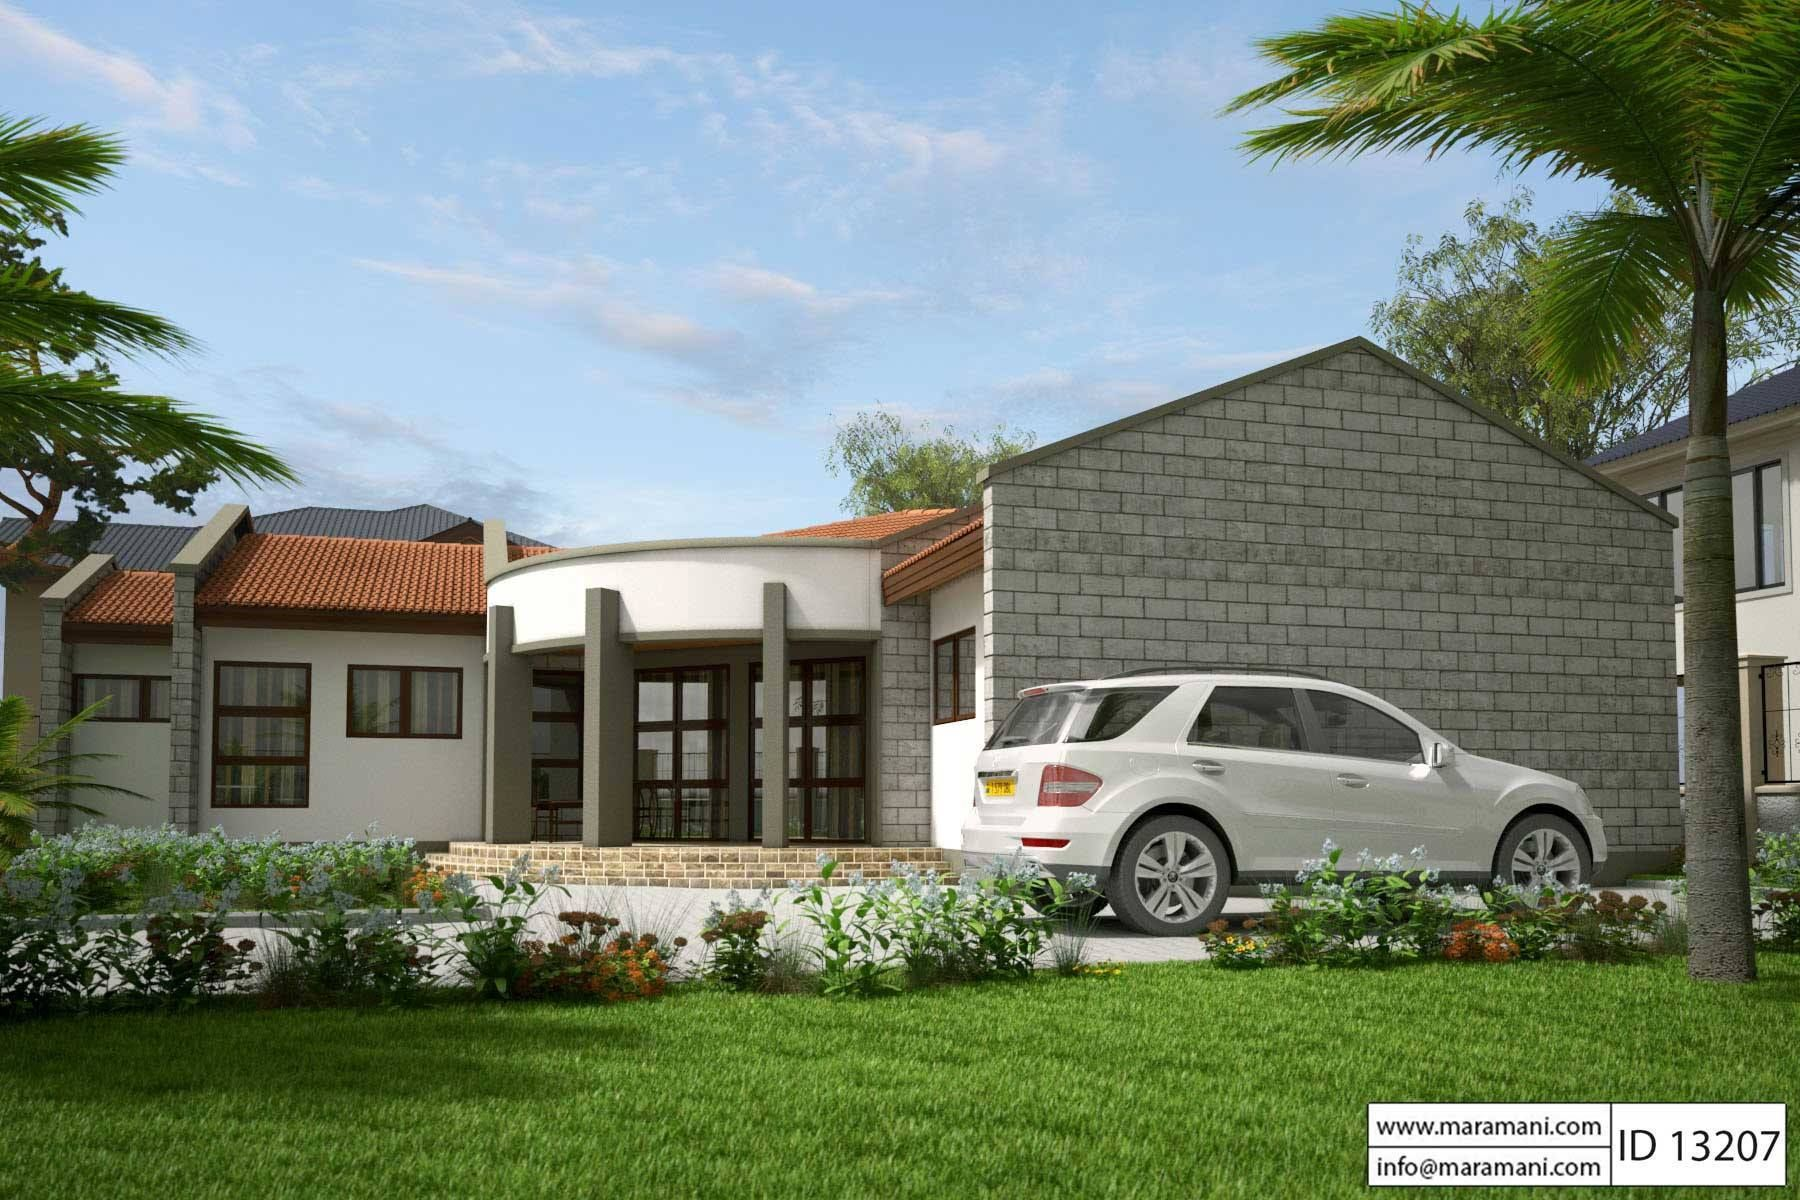 Low Budget Modern 3 Bedroom House Design Id 13207 Plans By Maramani House Design Budget Modern Luxury House Plans